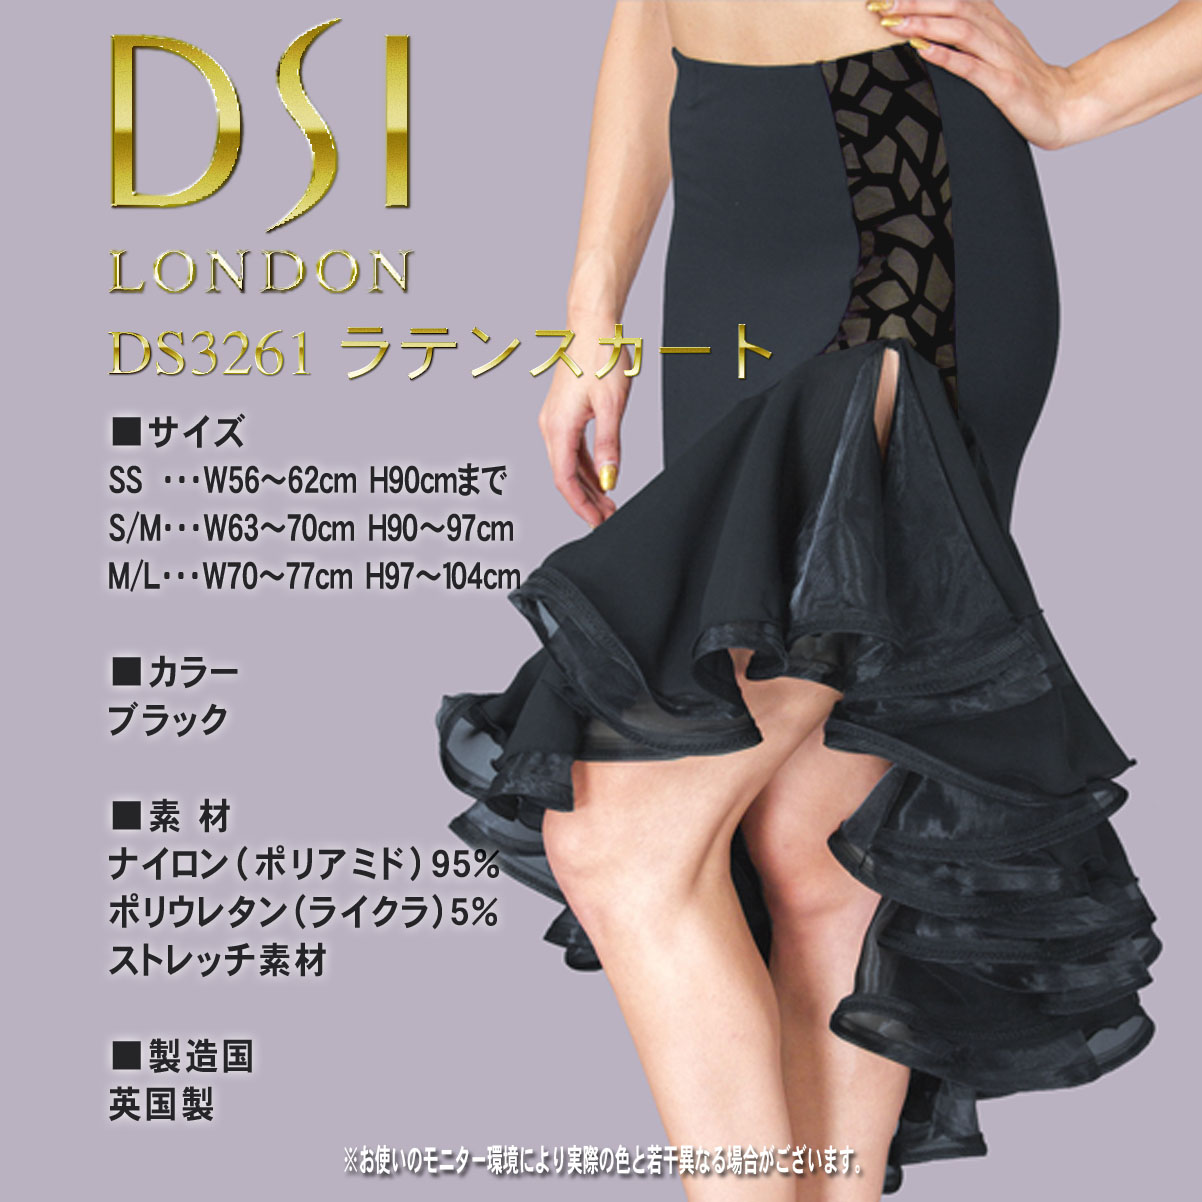 DSI 3261 Julianna skirt